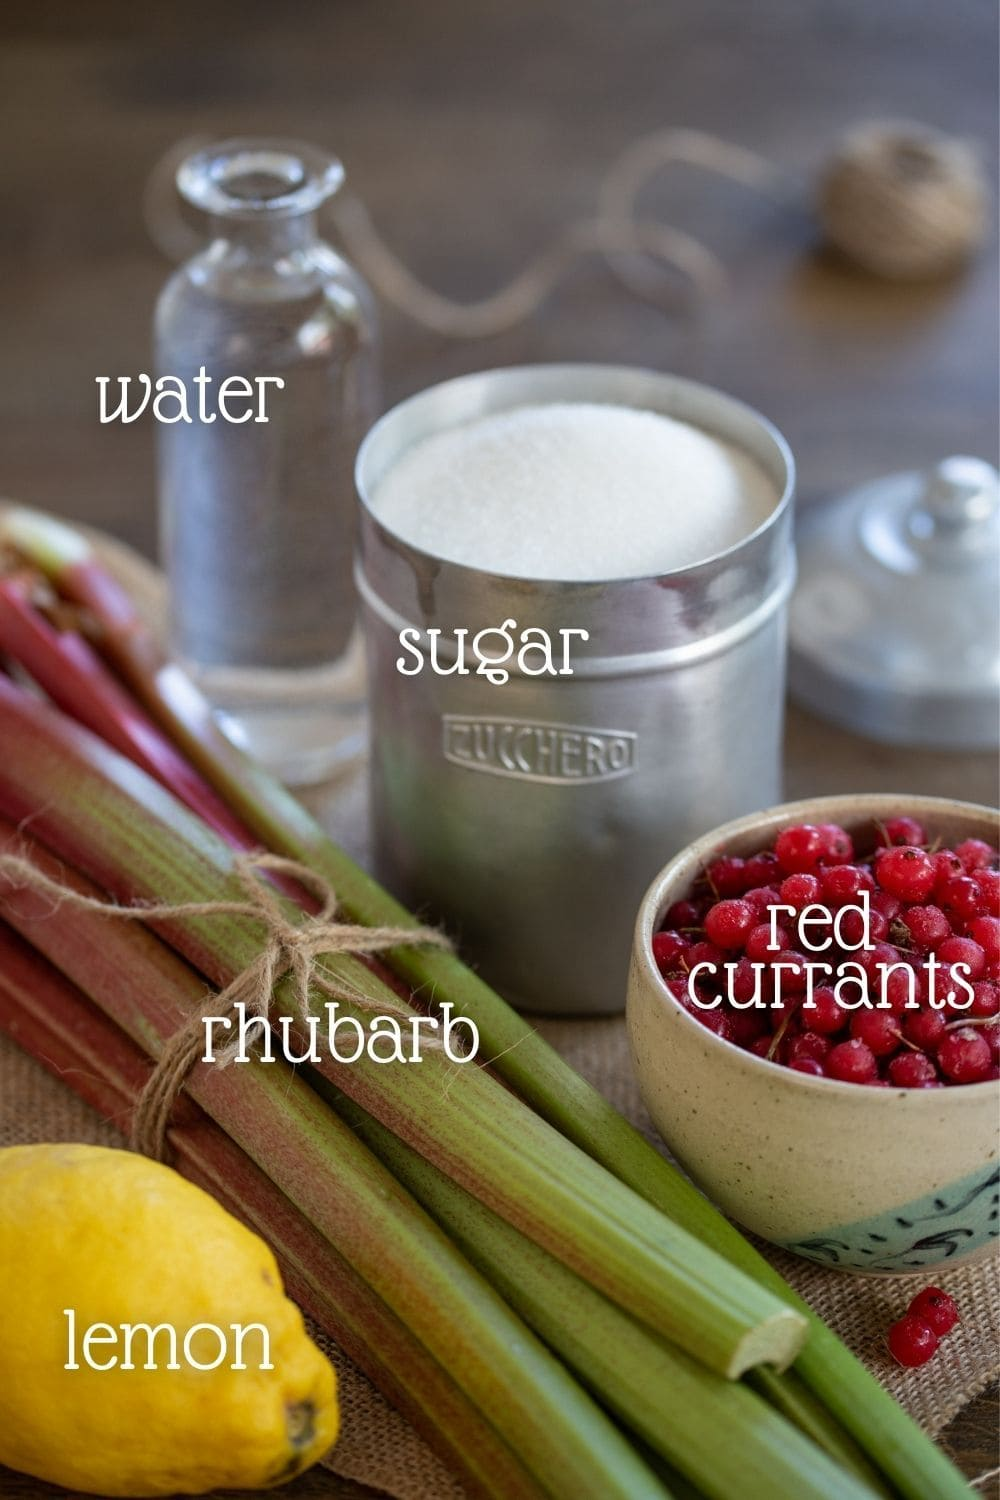 Rhubarb stalks, redcurrants and other ingredients needed.